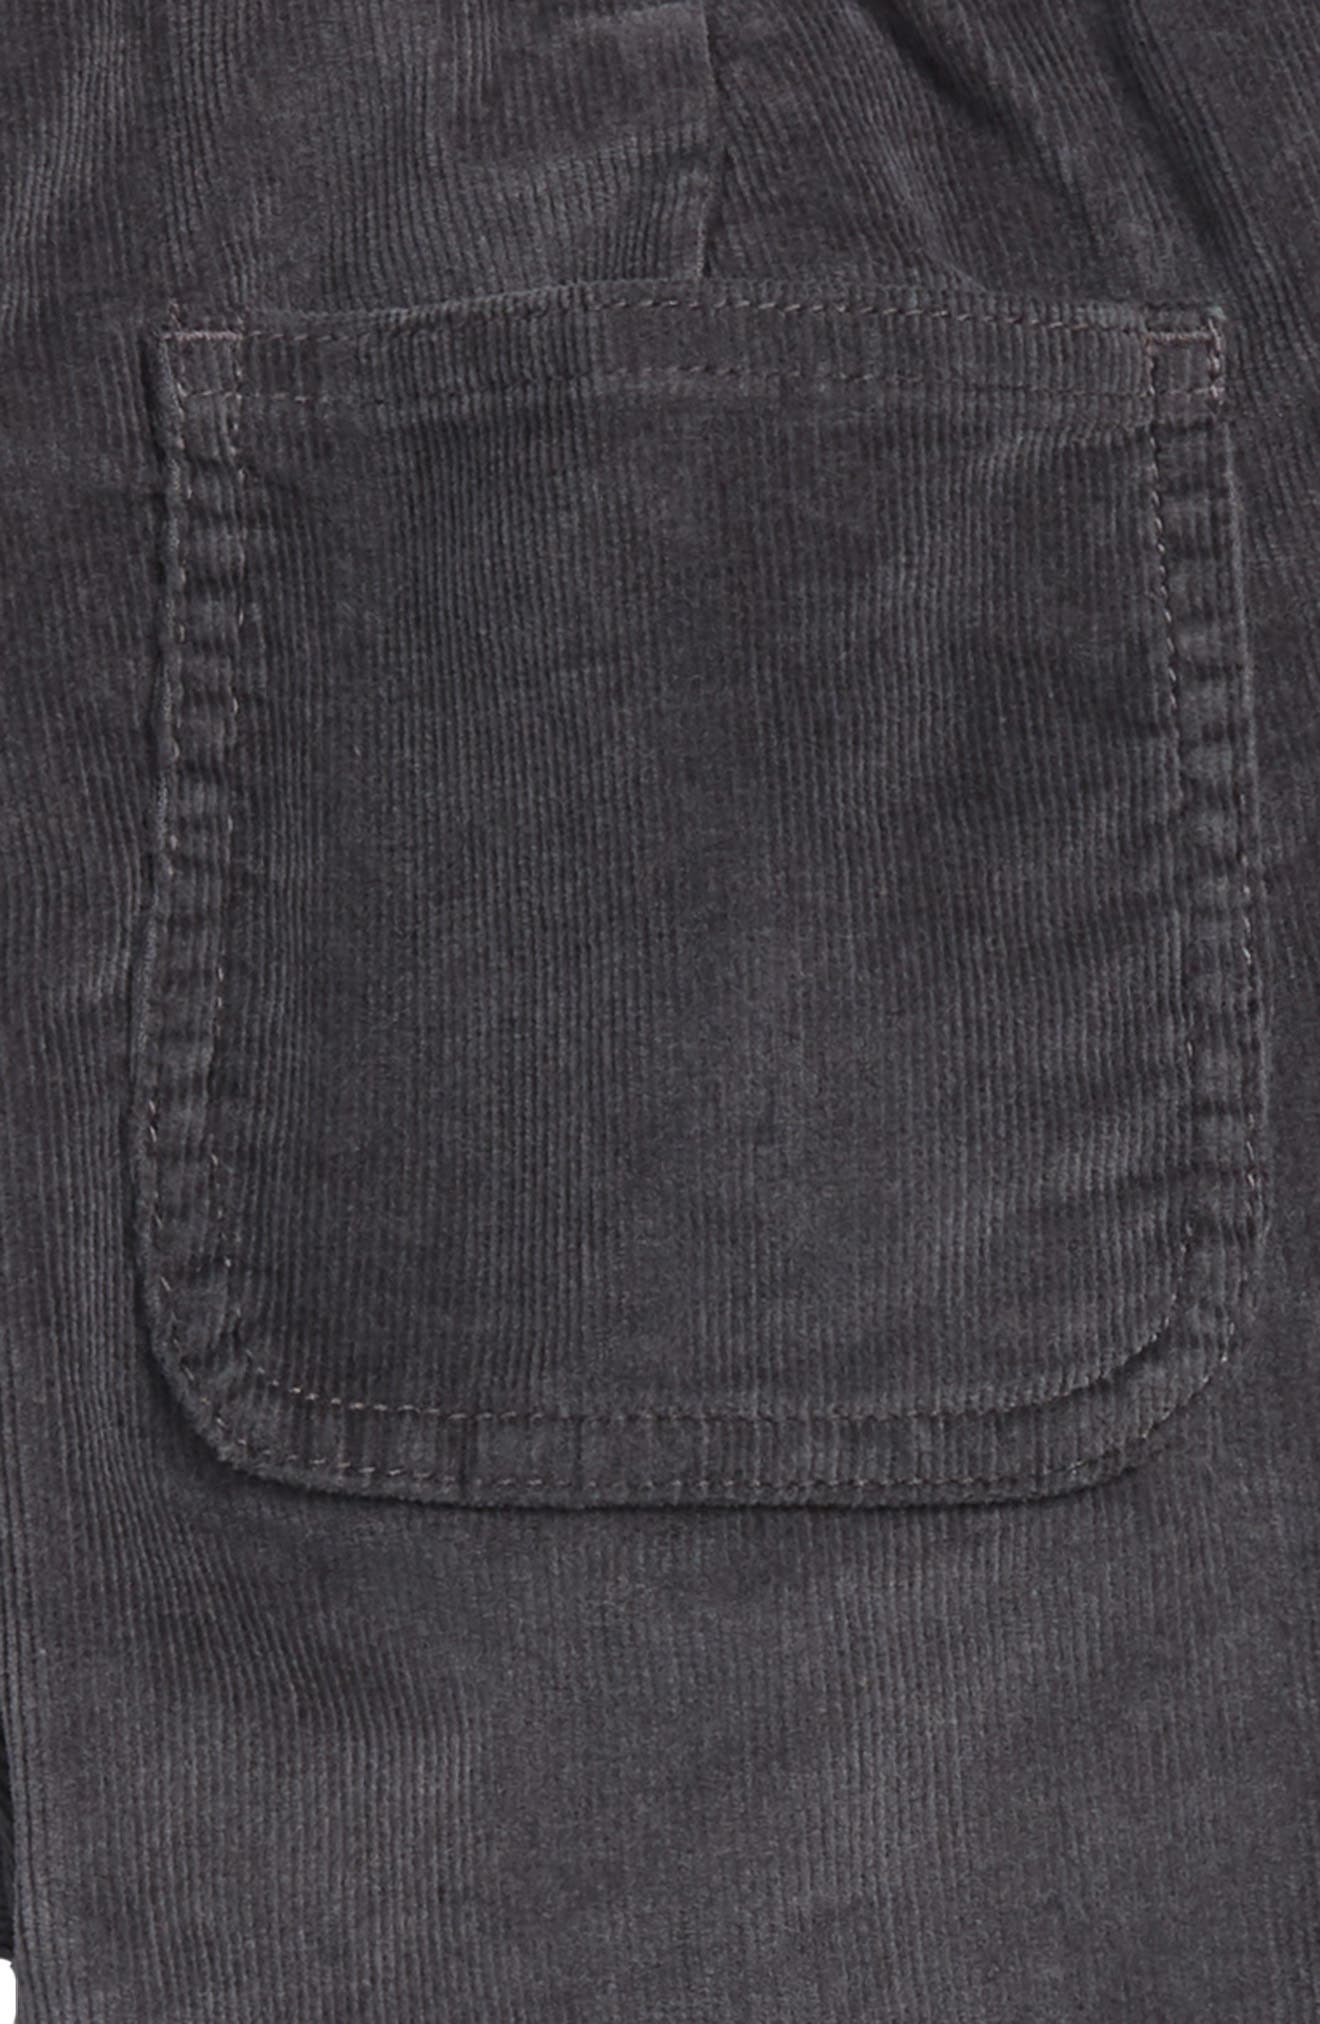 Corduroy Pull-On Pants,                             Alternate thumbnail 3, color,                             COAL GREY